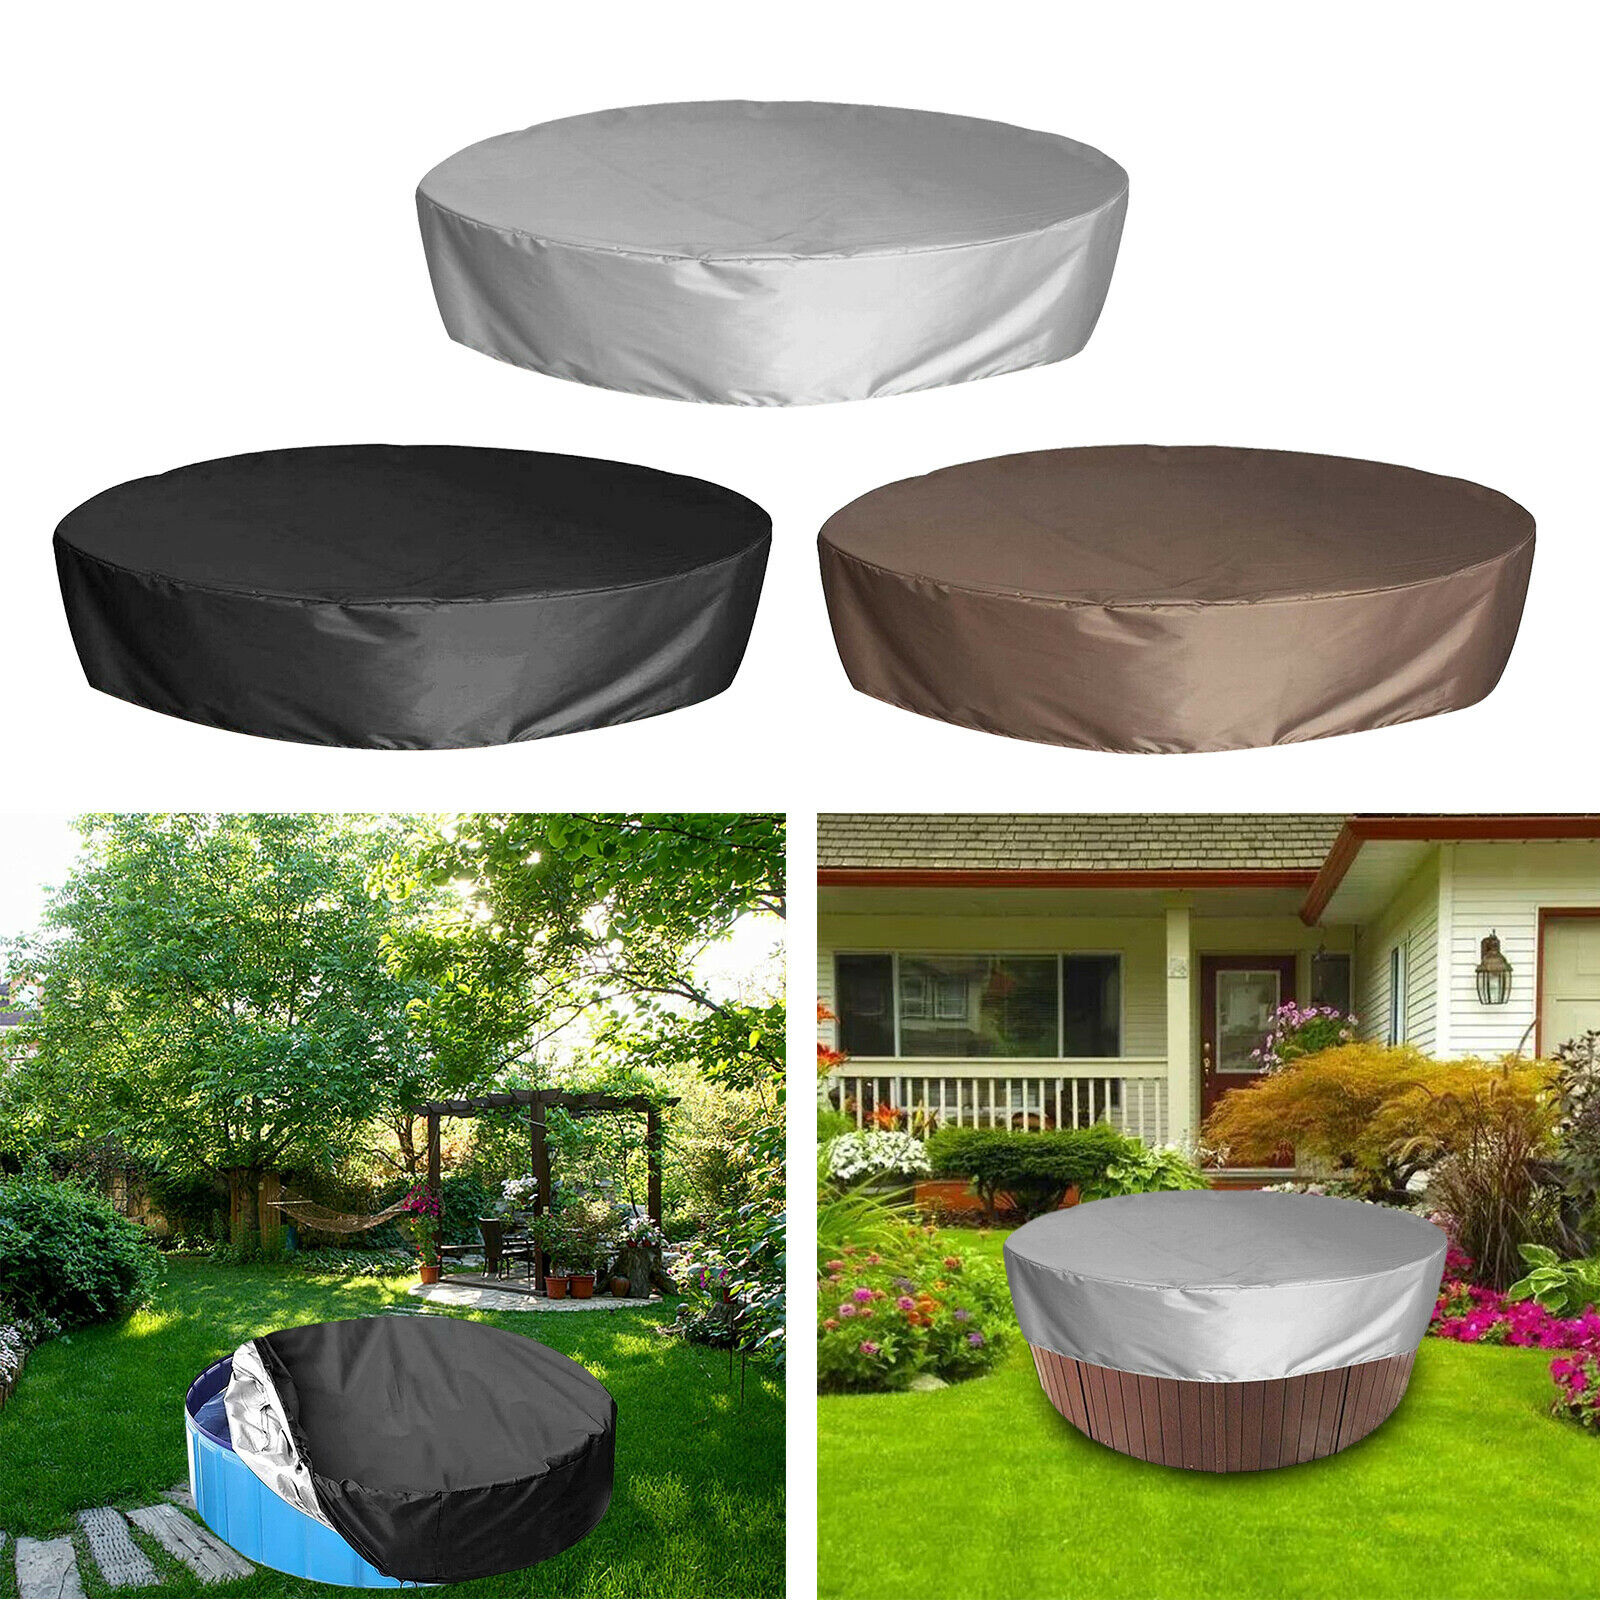 Pool Cover UV Protection SPA Hot Tub Above Ground Pool 190T Oxford Cloth